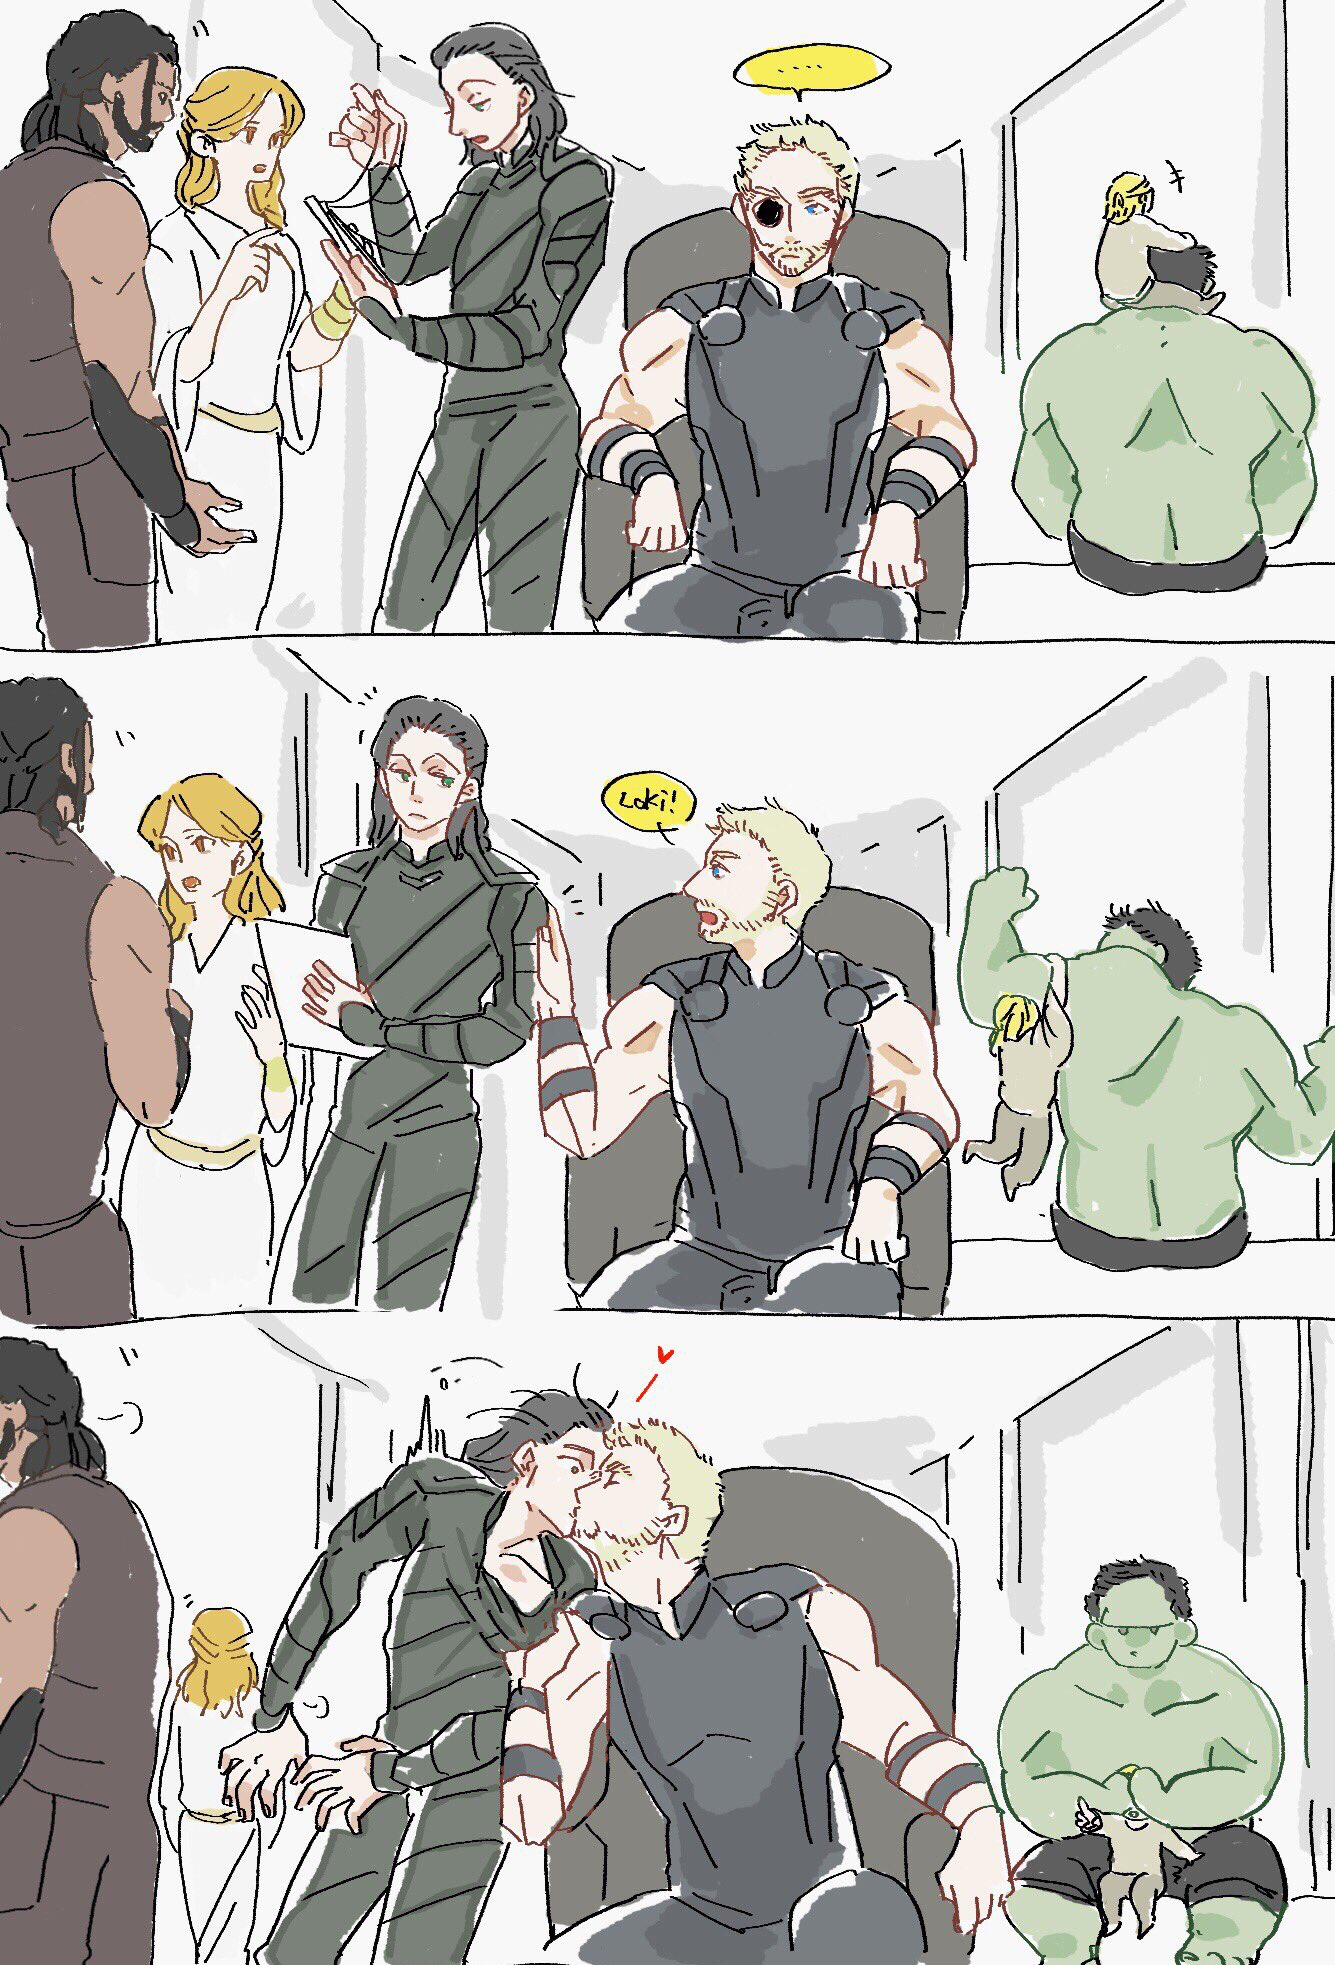 I don't ship it at all, but pinning for hulk in the last panel